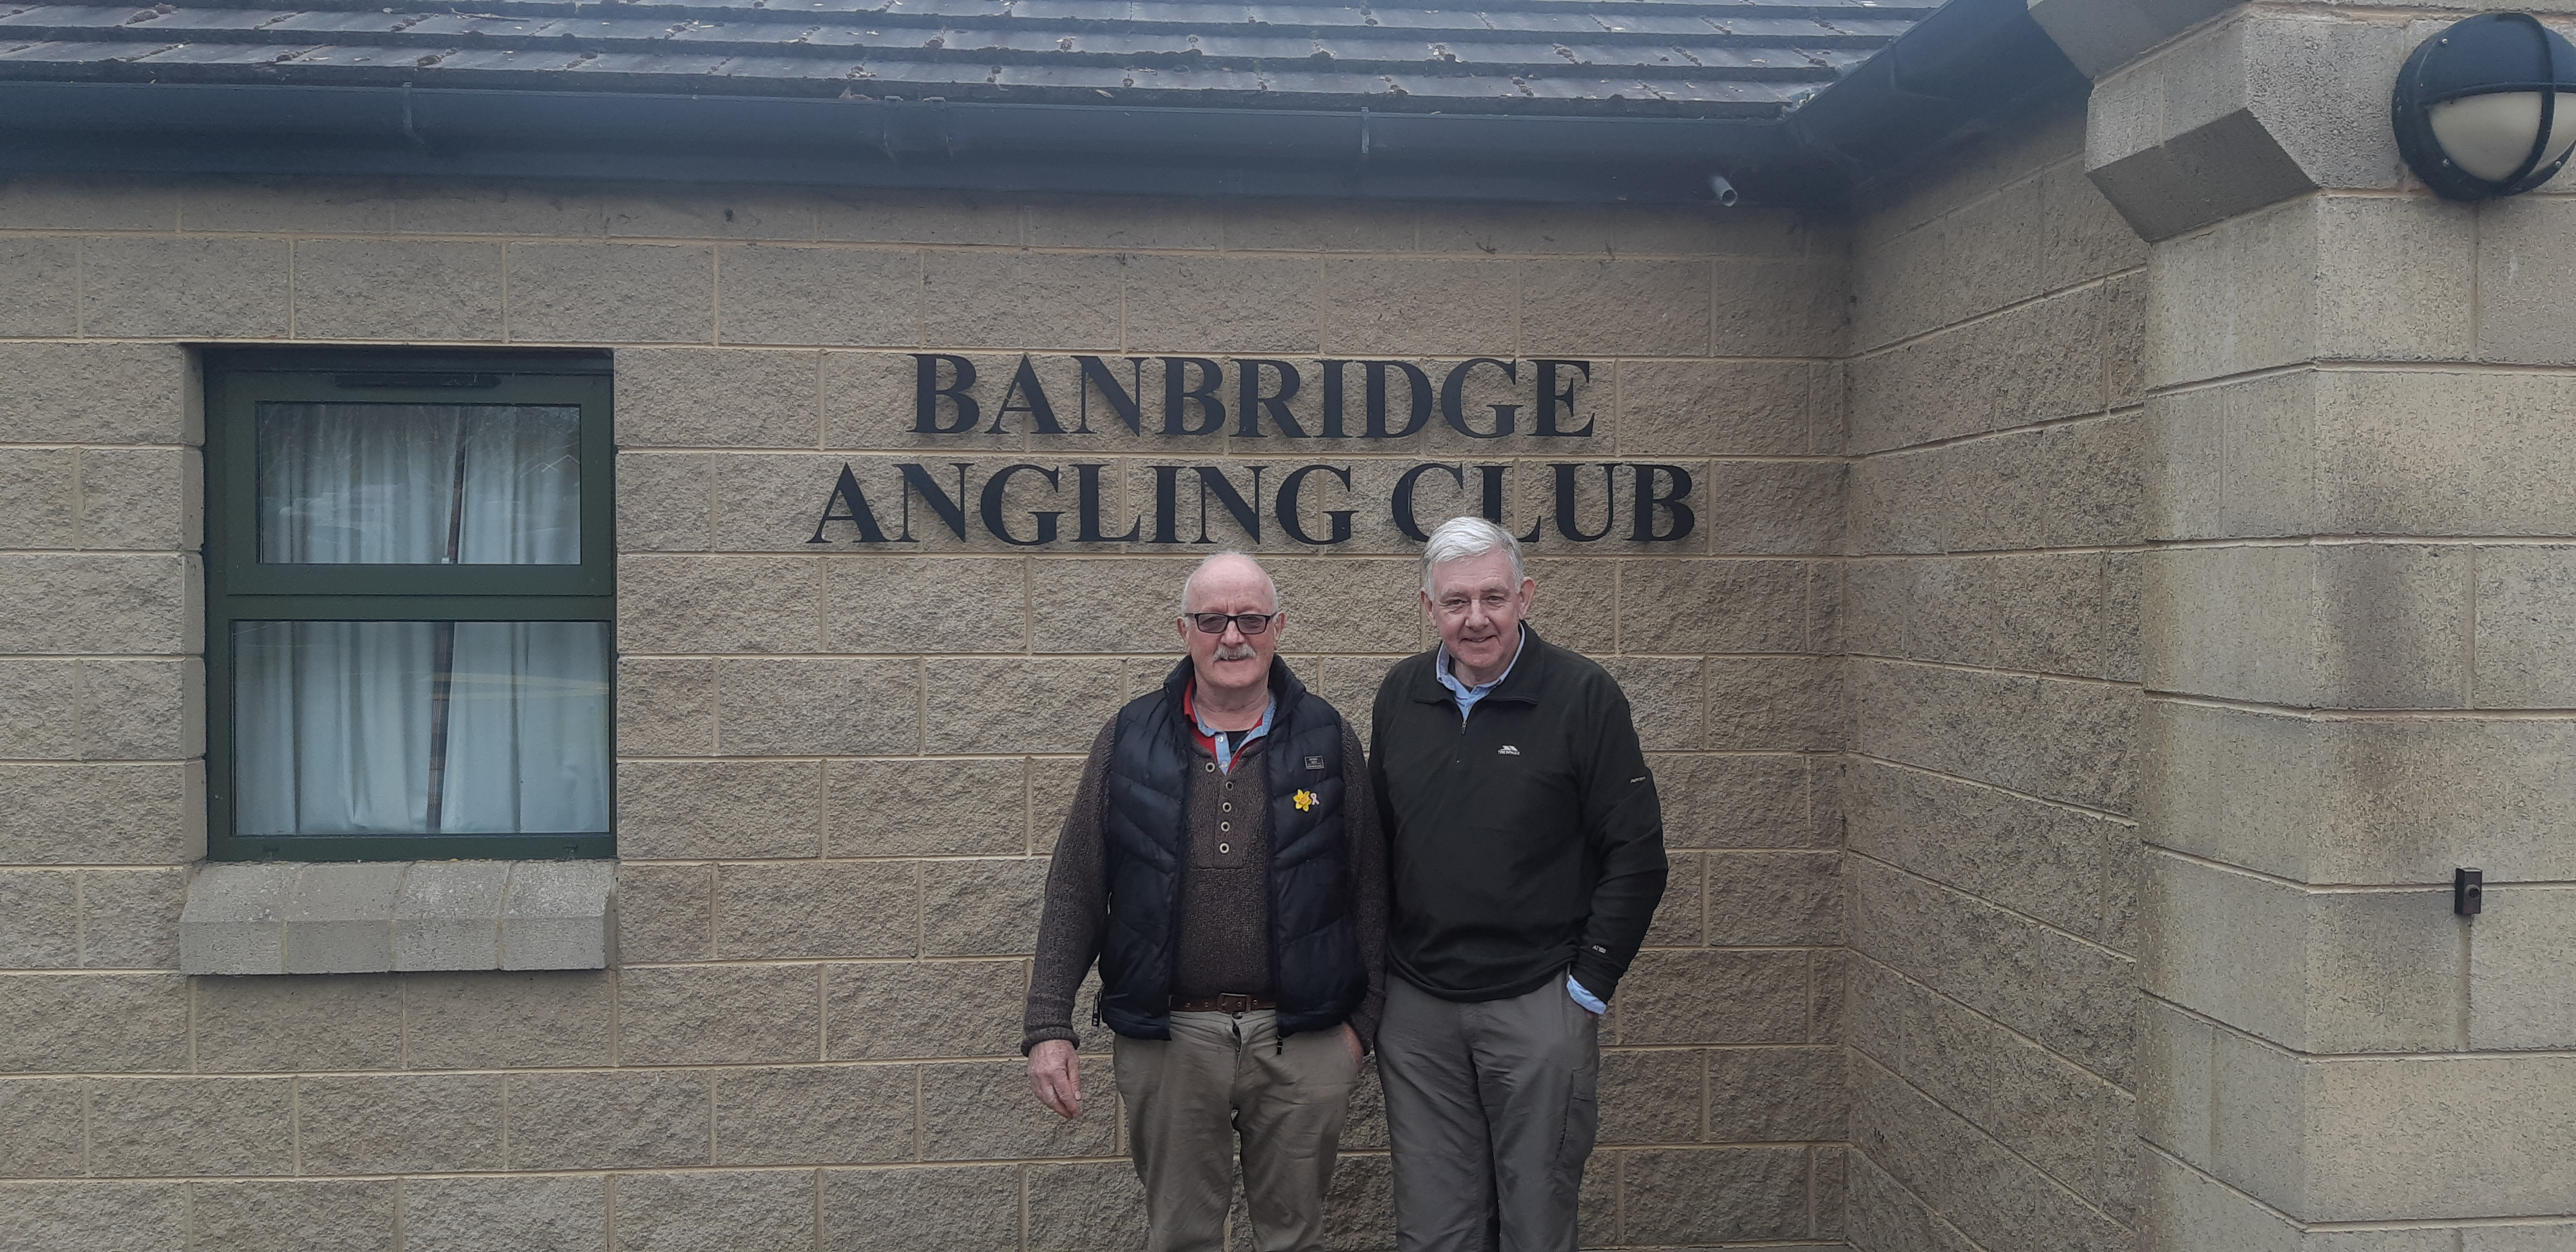 BAC AIB Cup, River Bann, 23 March 2019 - Wilson Clinghan 1st and Sam Grant 2nd